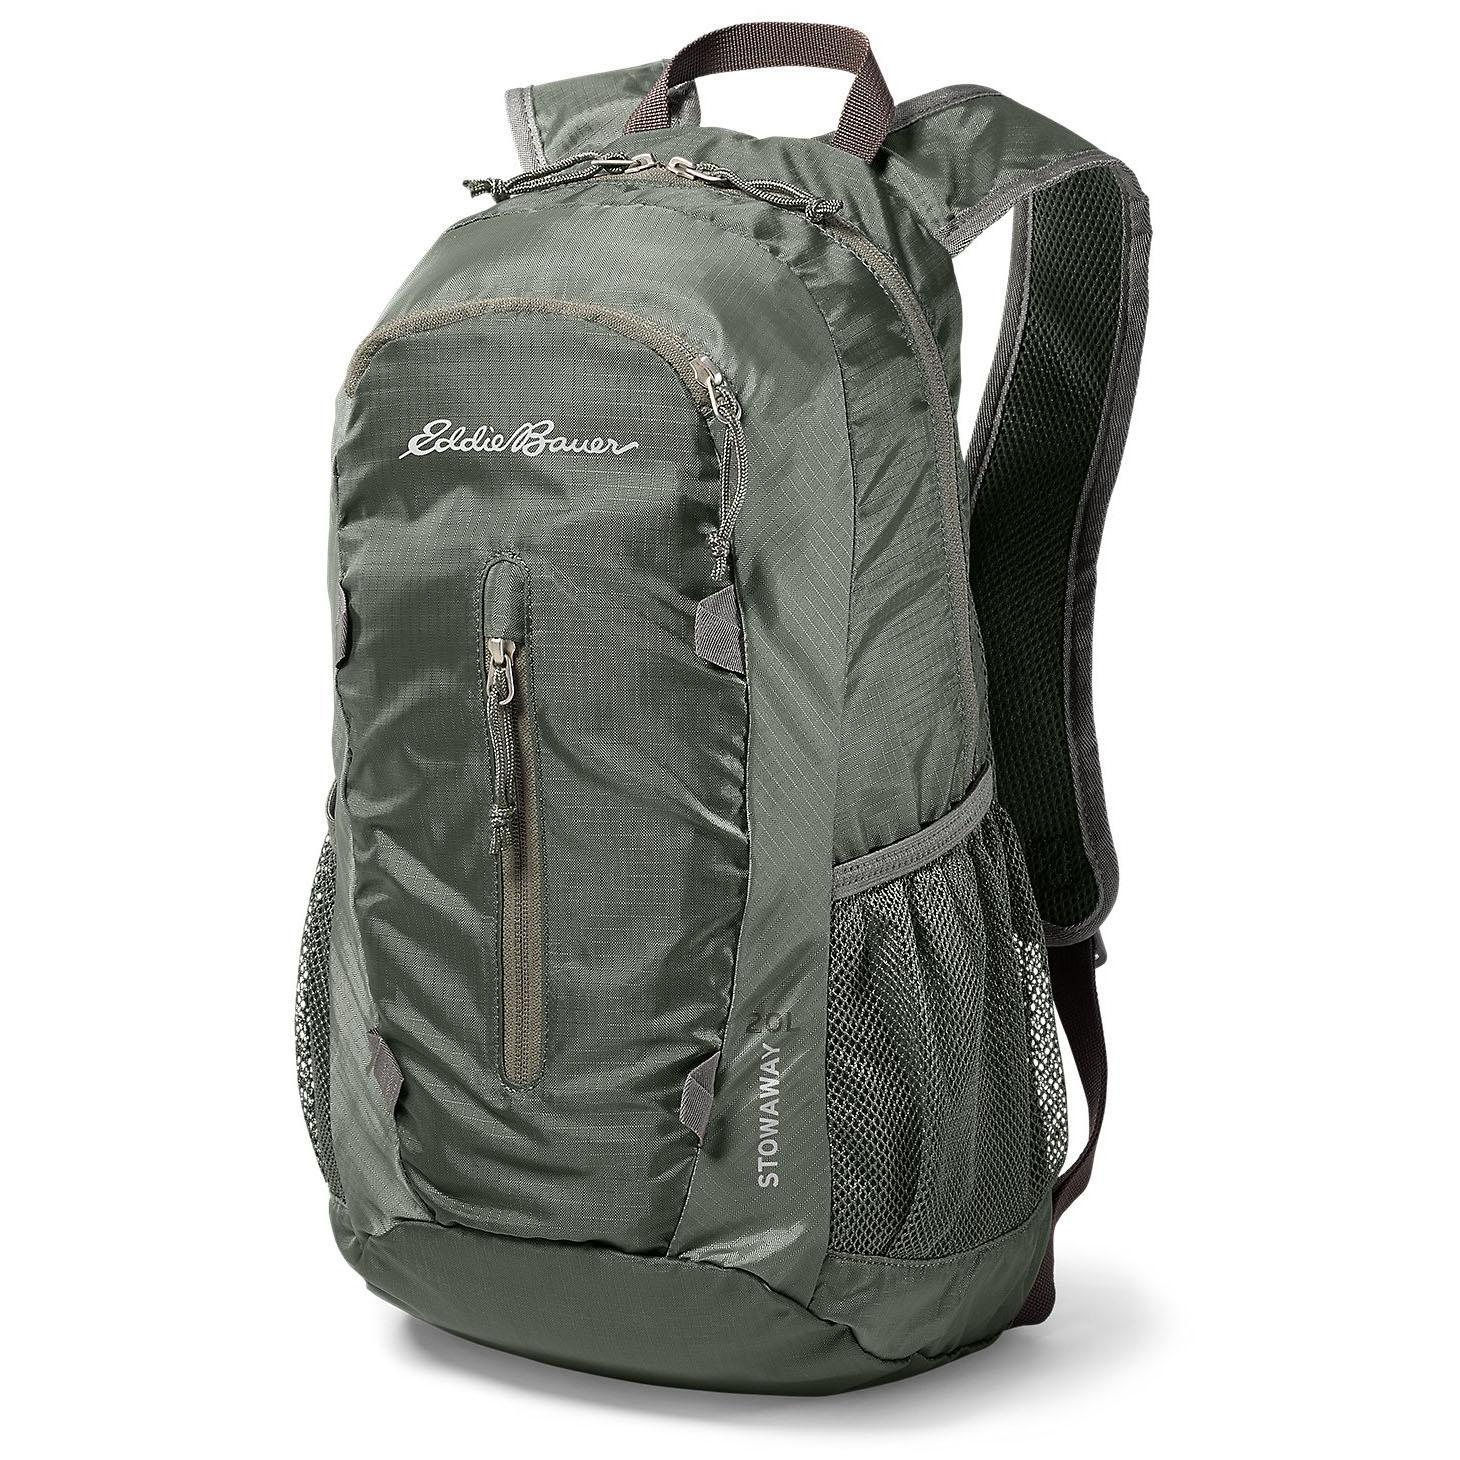 Eddie Bauer Stowaway 20L Packable Pack for $15 Shipped